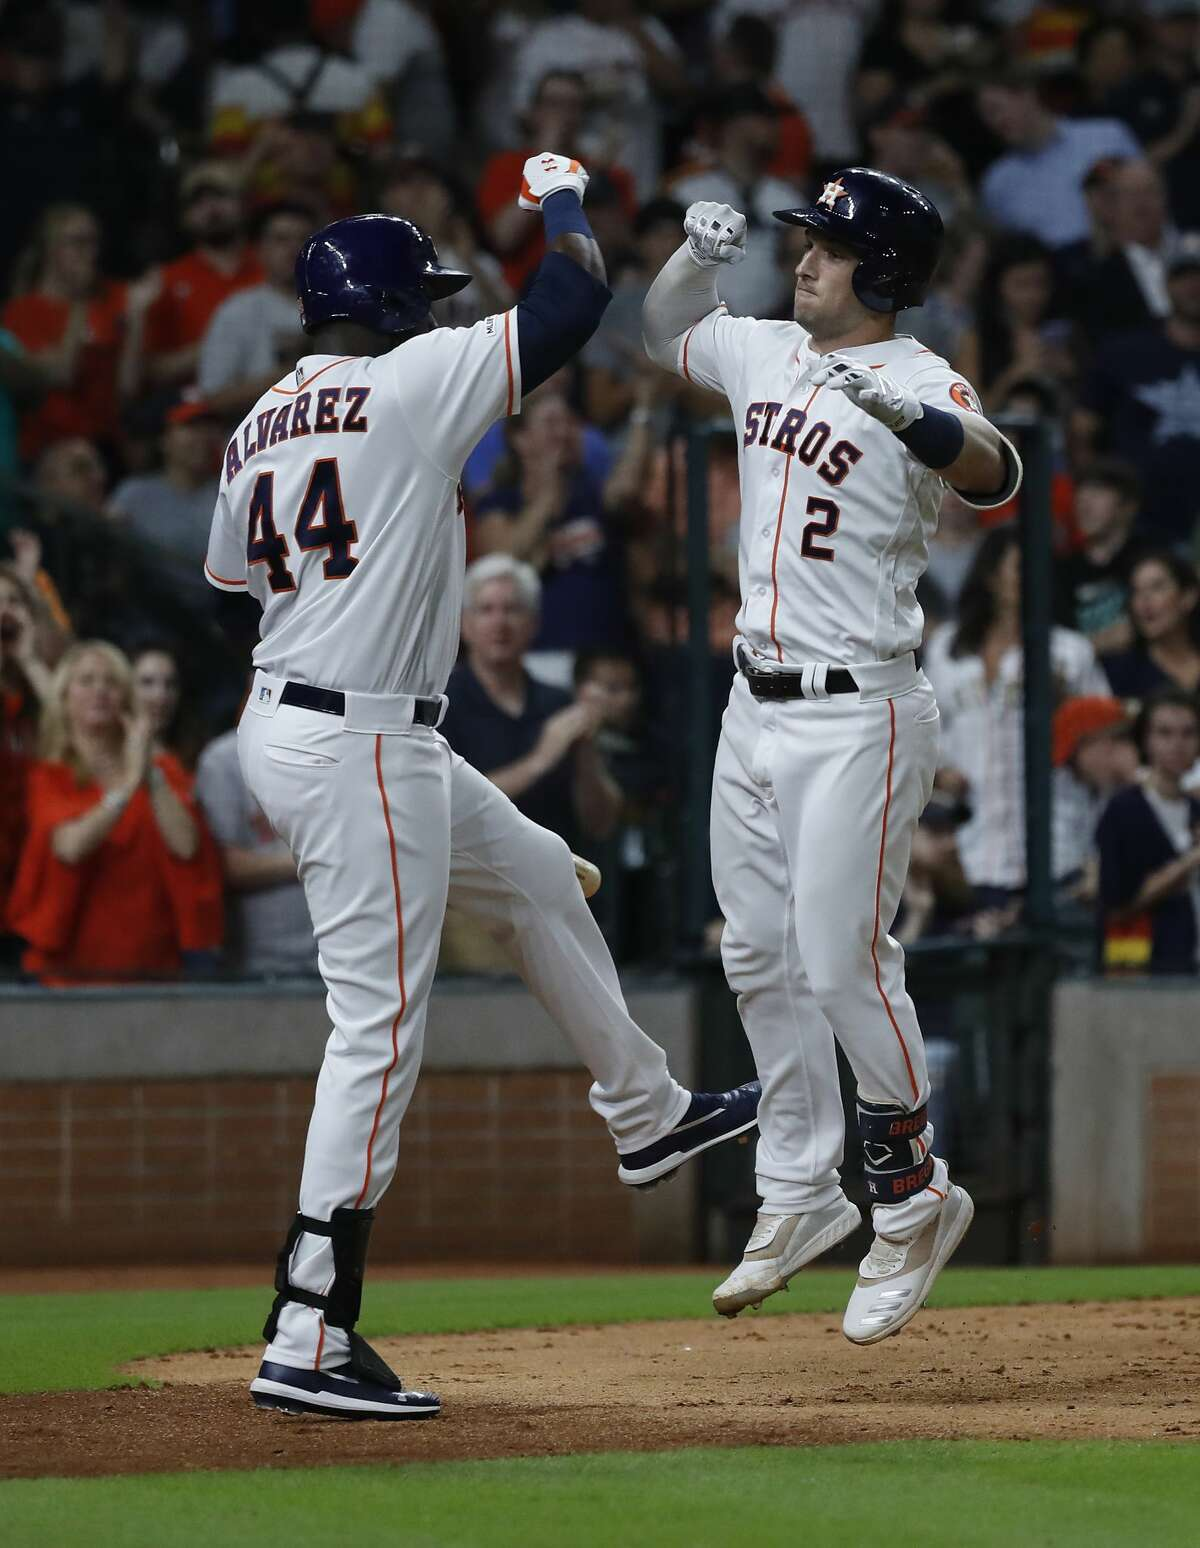 Houston Astros Alex Bregman (2) celebrates wth Yordan Alvarez (44) after hitting a two-run home run in the fourth inning of an MLB game at Minute Maid Park, Thursday, August 22, 2019.